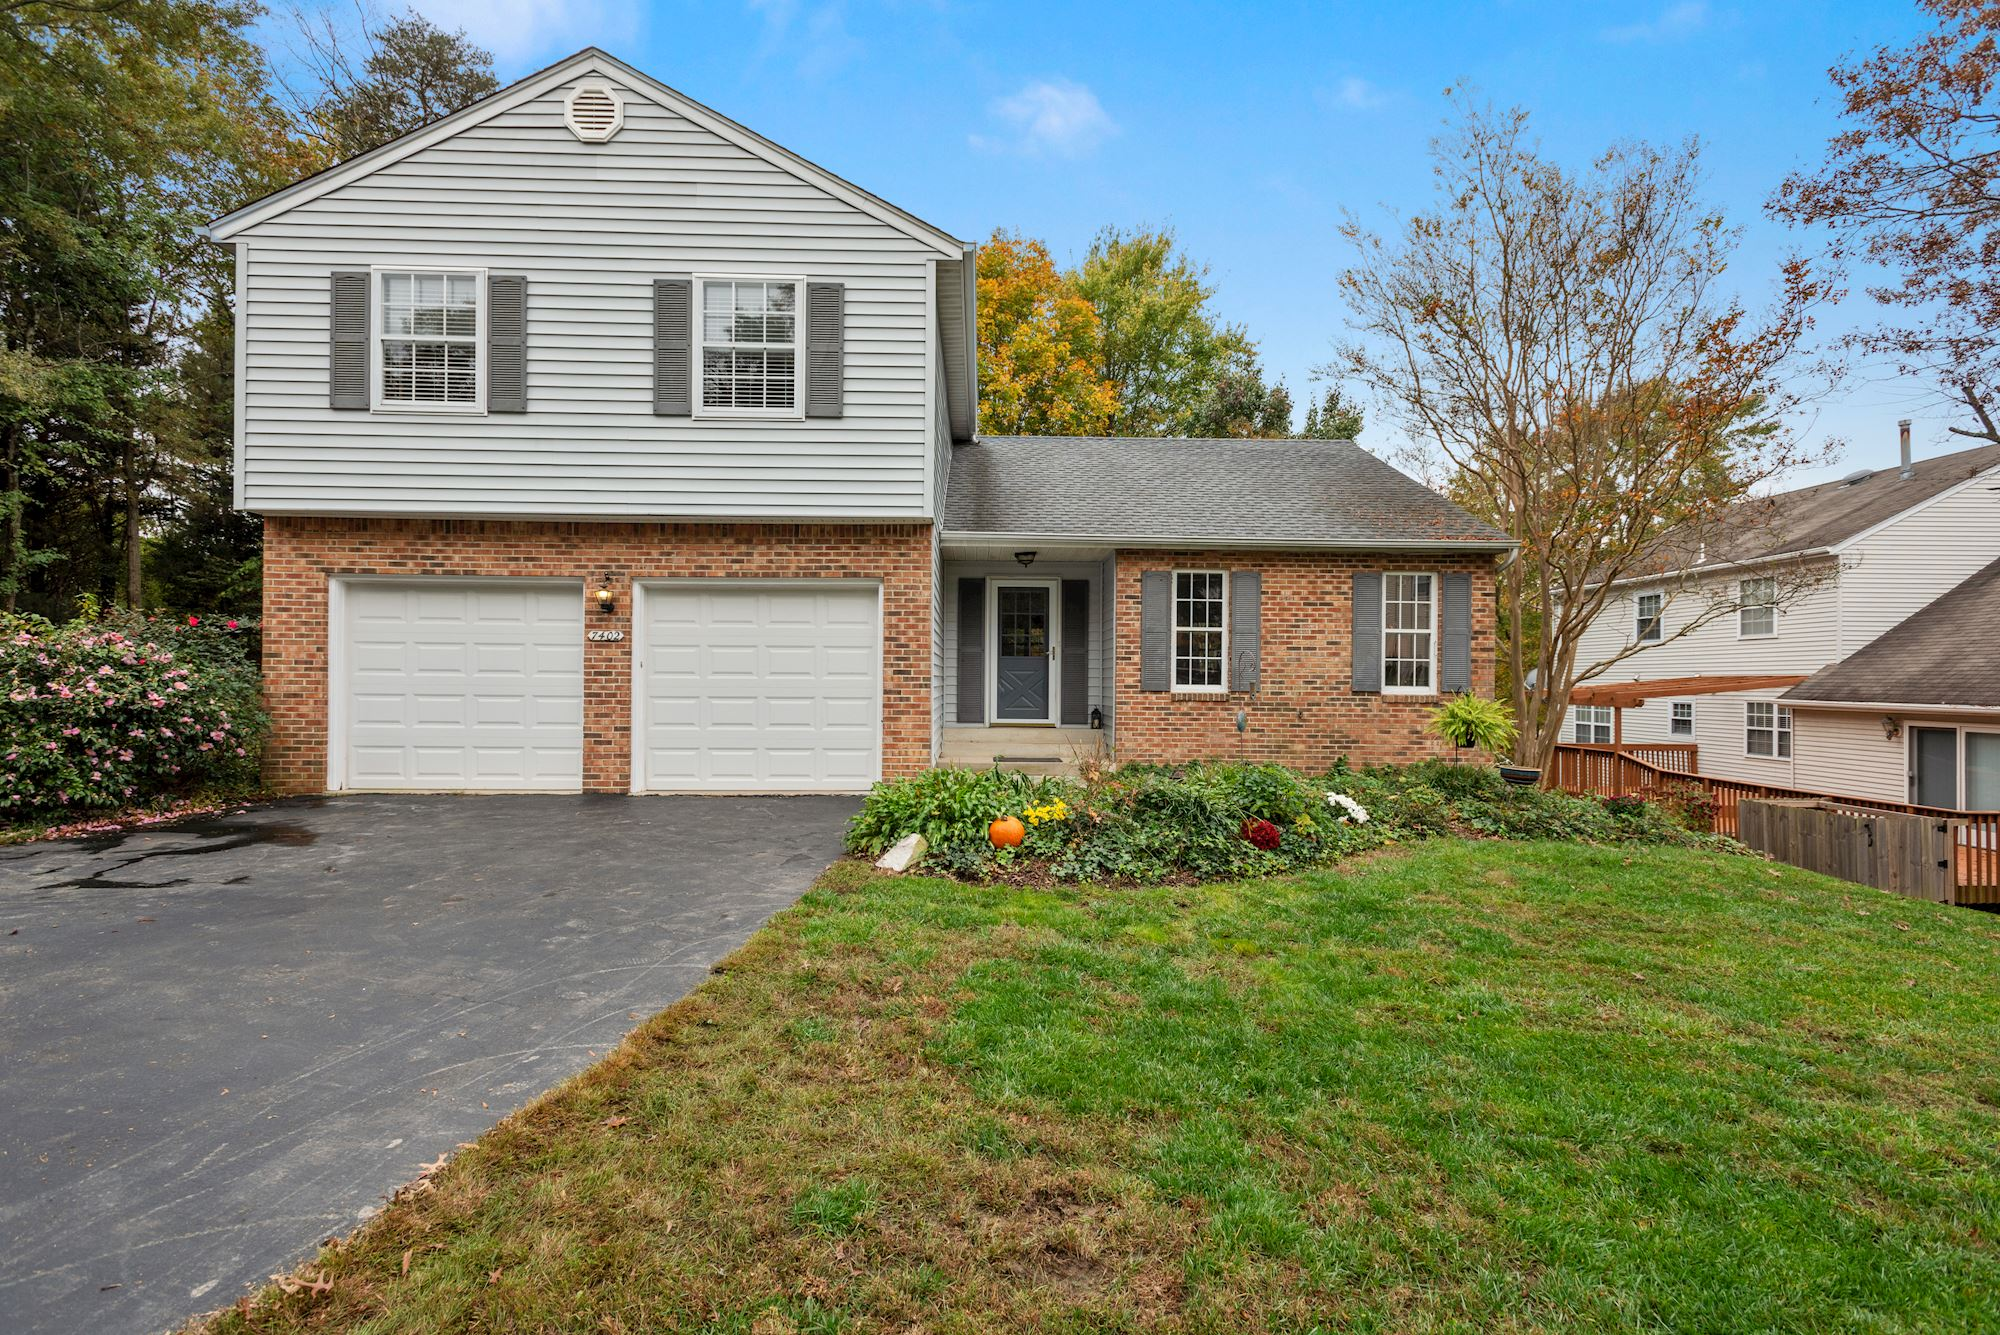 Turnkey Single Family Home in Highly Desirable Community of Springfield, VA